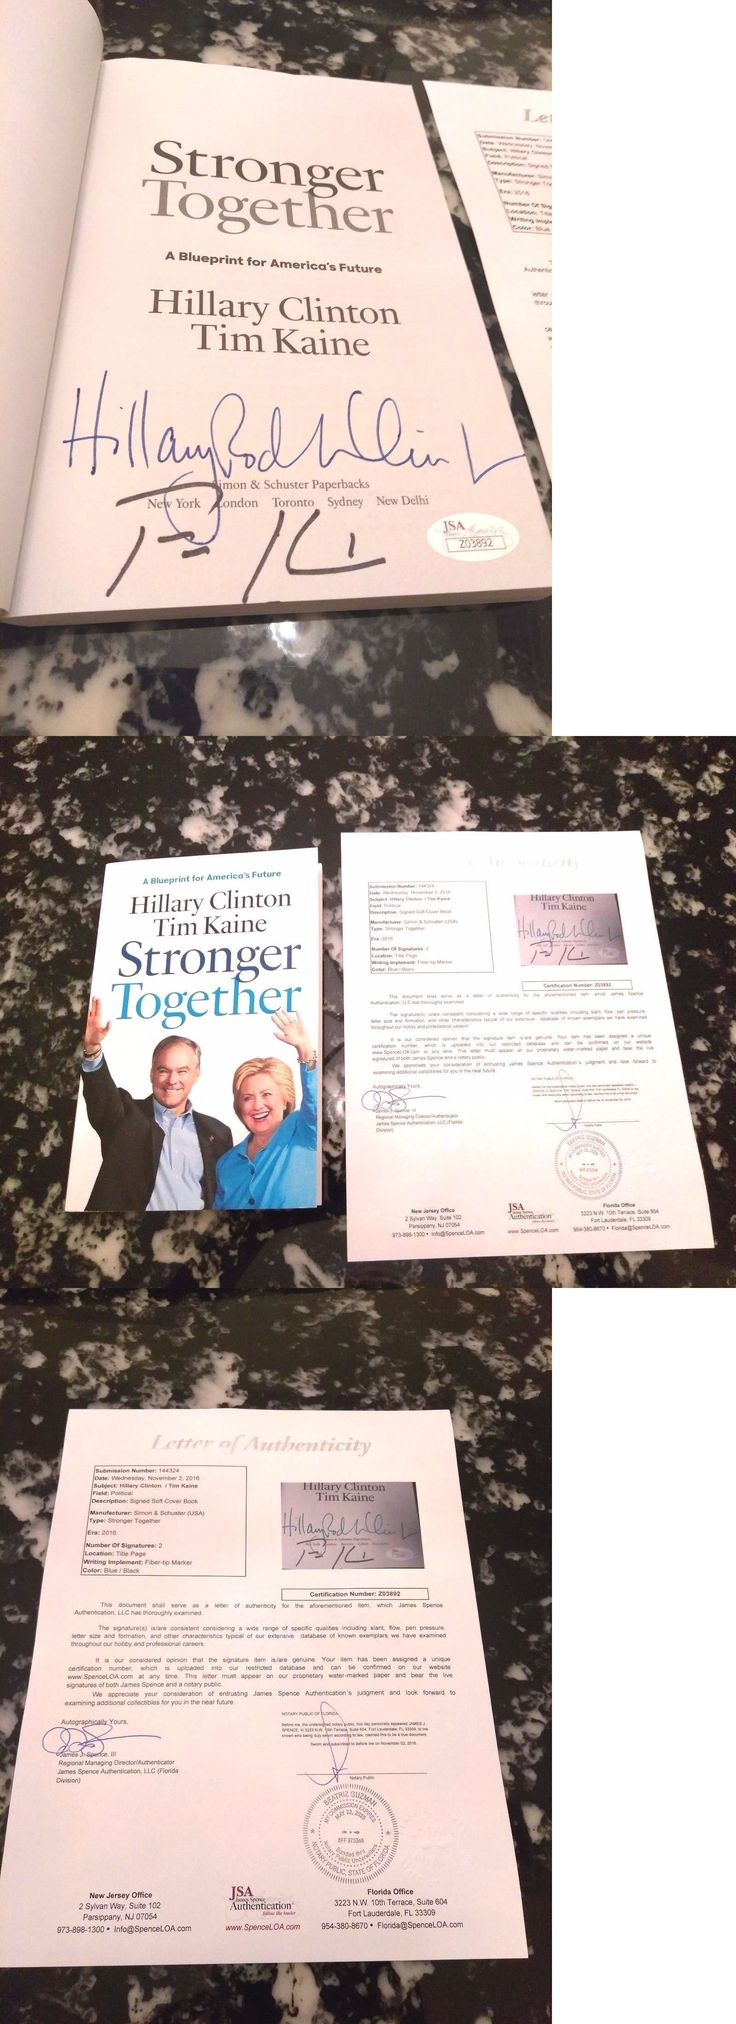 Hillary Clinton: Hillary Clinton And Tim Kaine Dual Autographed Stronger Together Book #3 Jsa Loa -> BUY IT NOW ONLY: $199.99 on eBay!